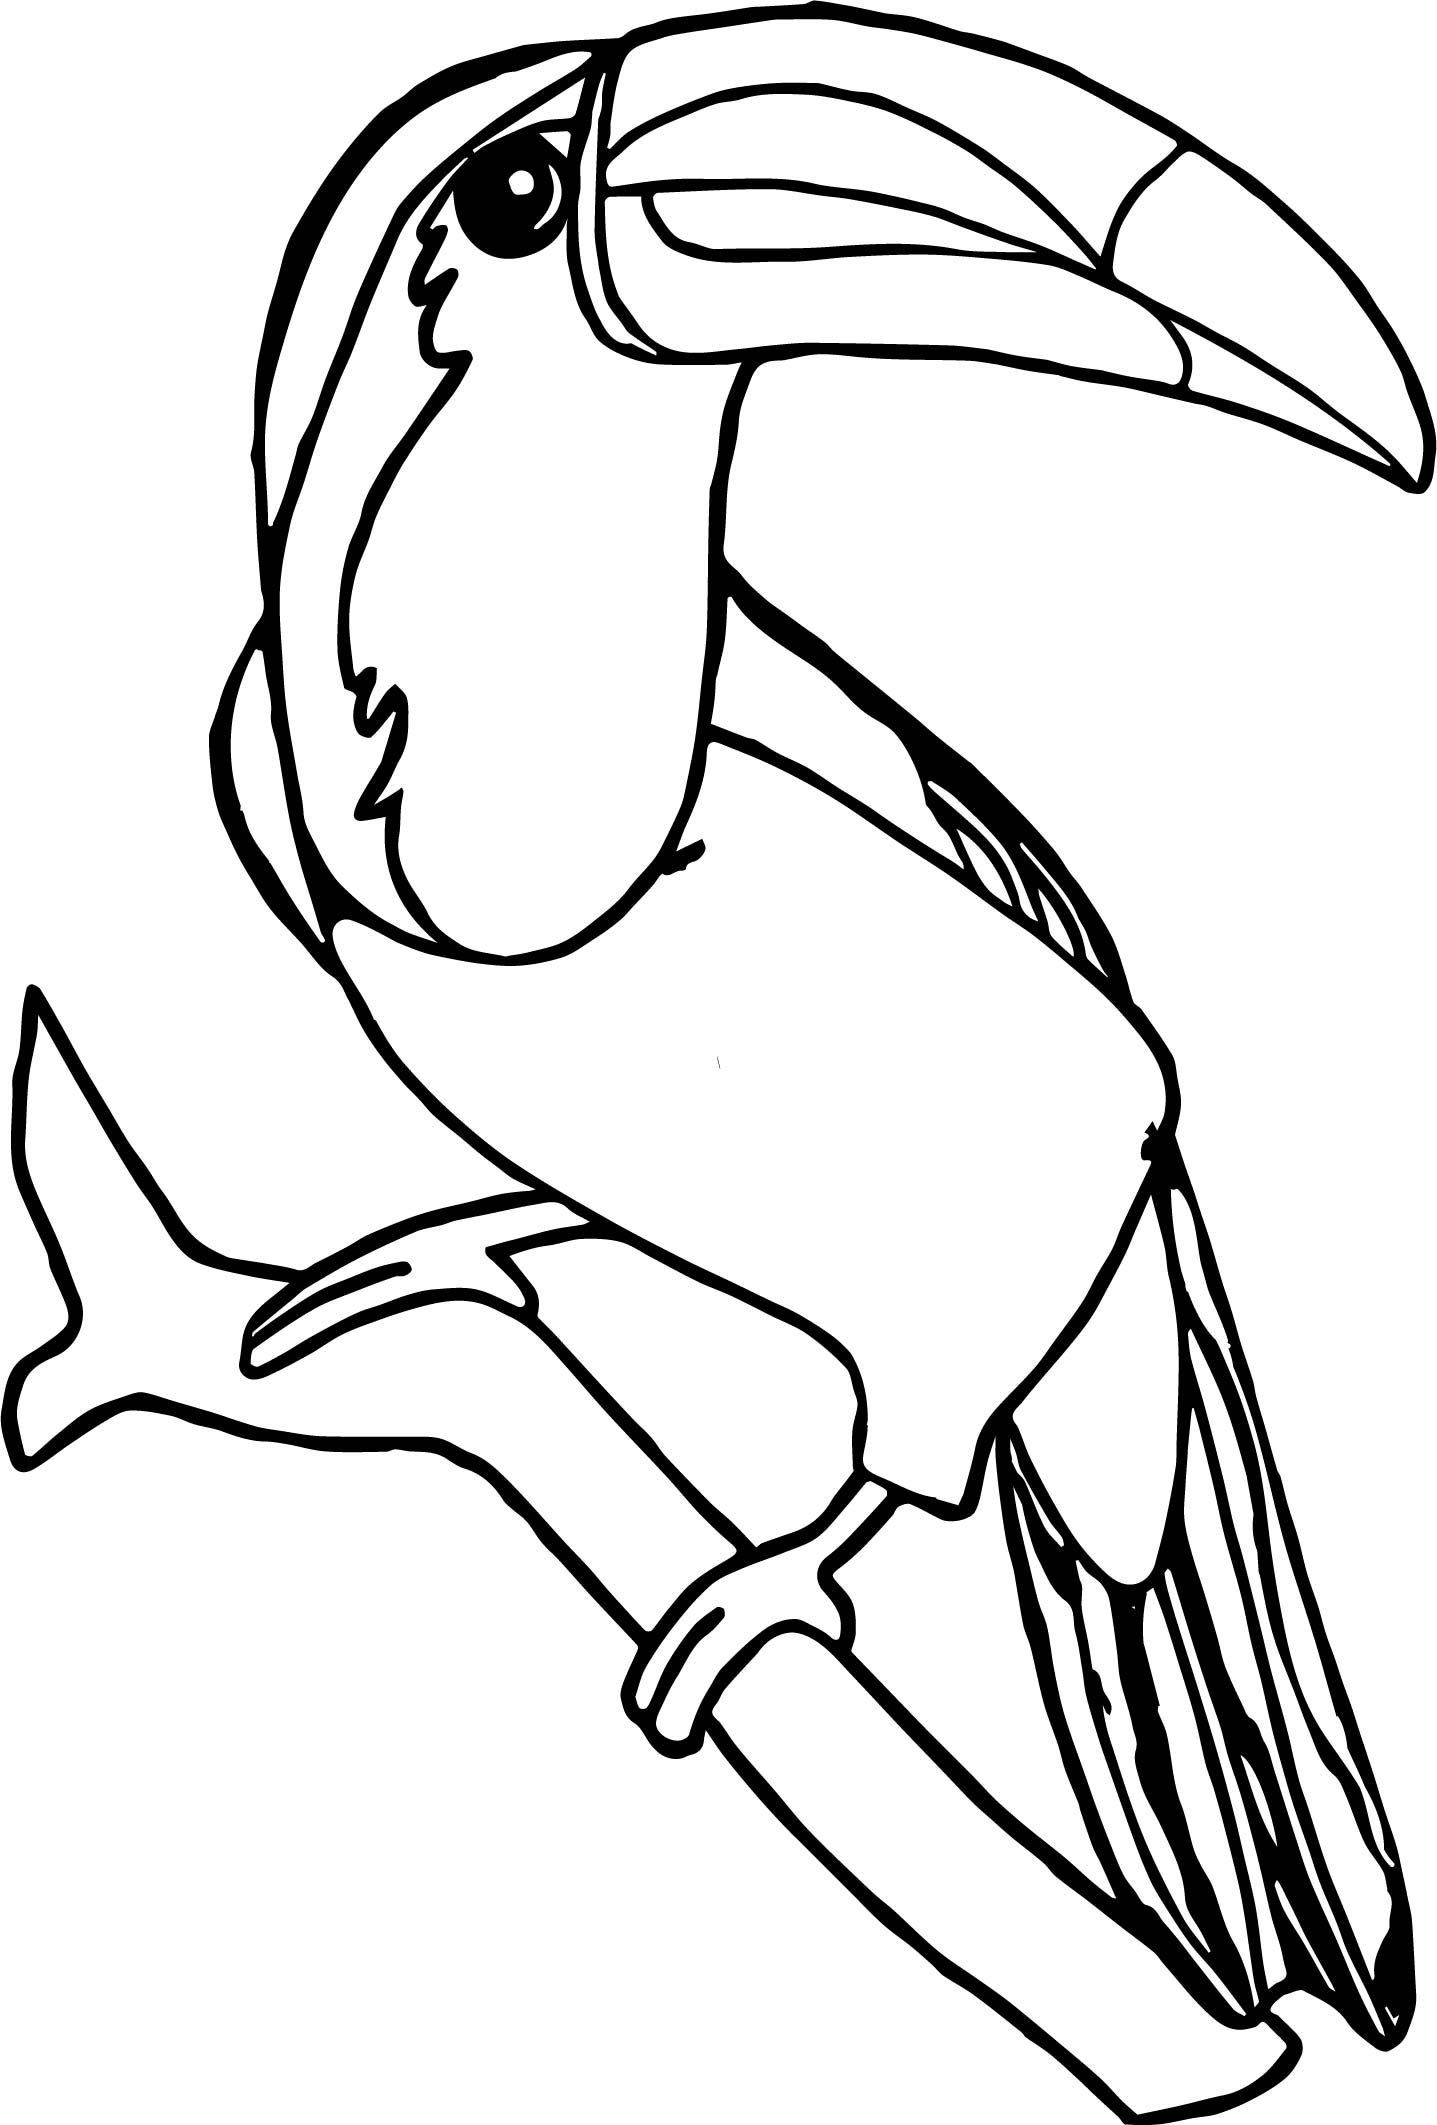 toucan pictures to print hey there i need ideas for my first tattoo yahoo answers toucan pictures print to